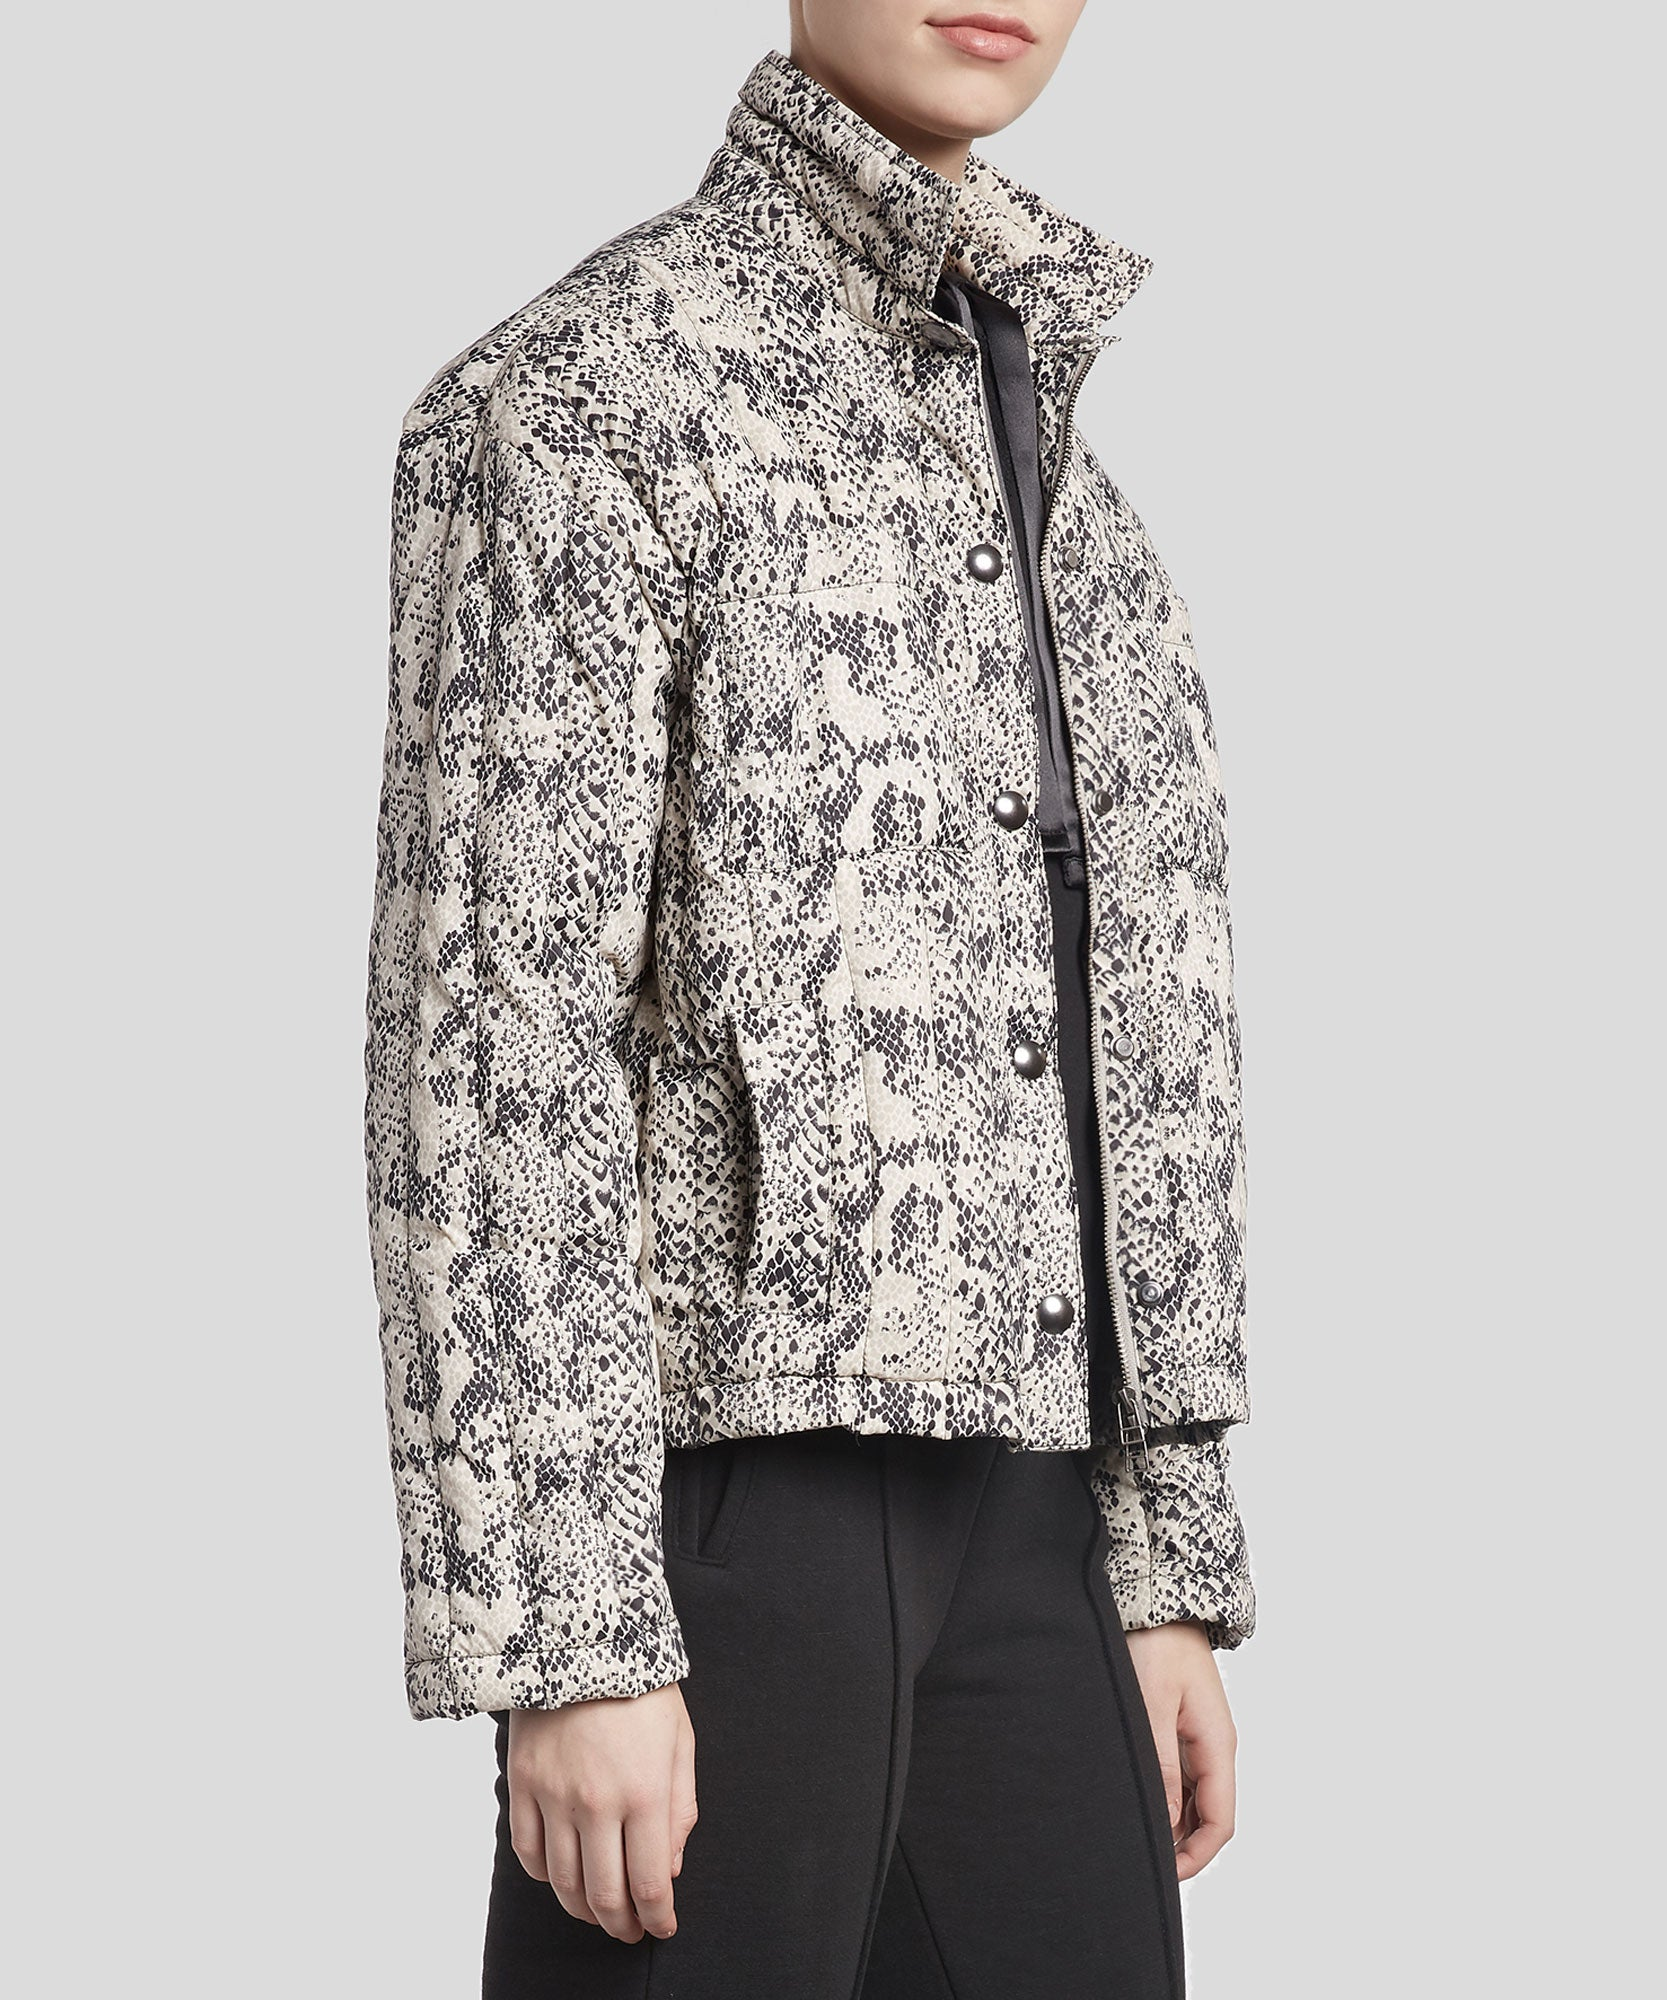 Snake Print Down Puffer Boxy Jacket - Women's Casual Jacket by ATM Anthony Thomas Melillo